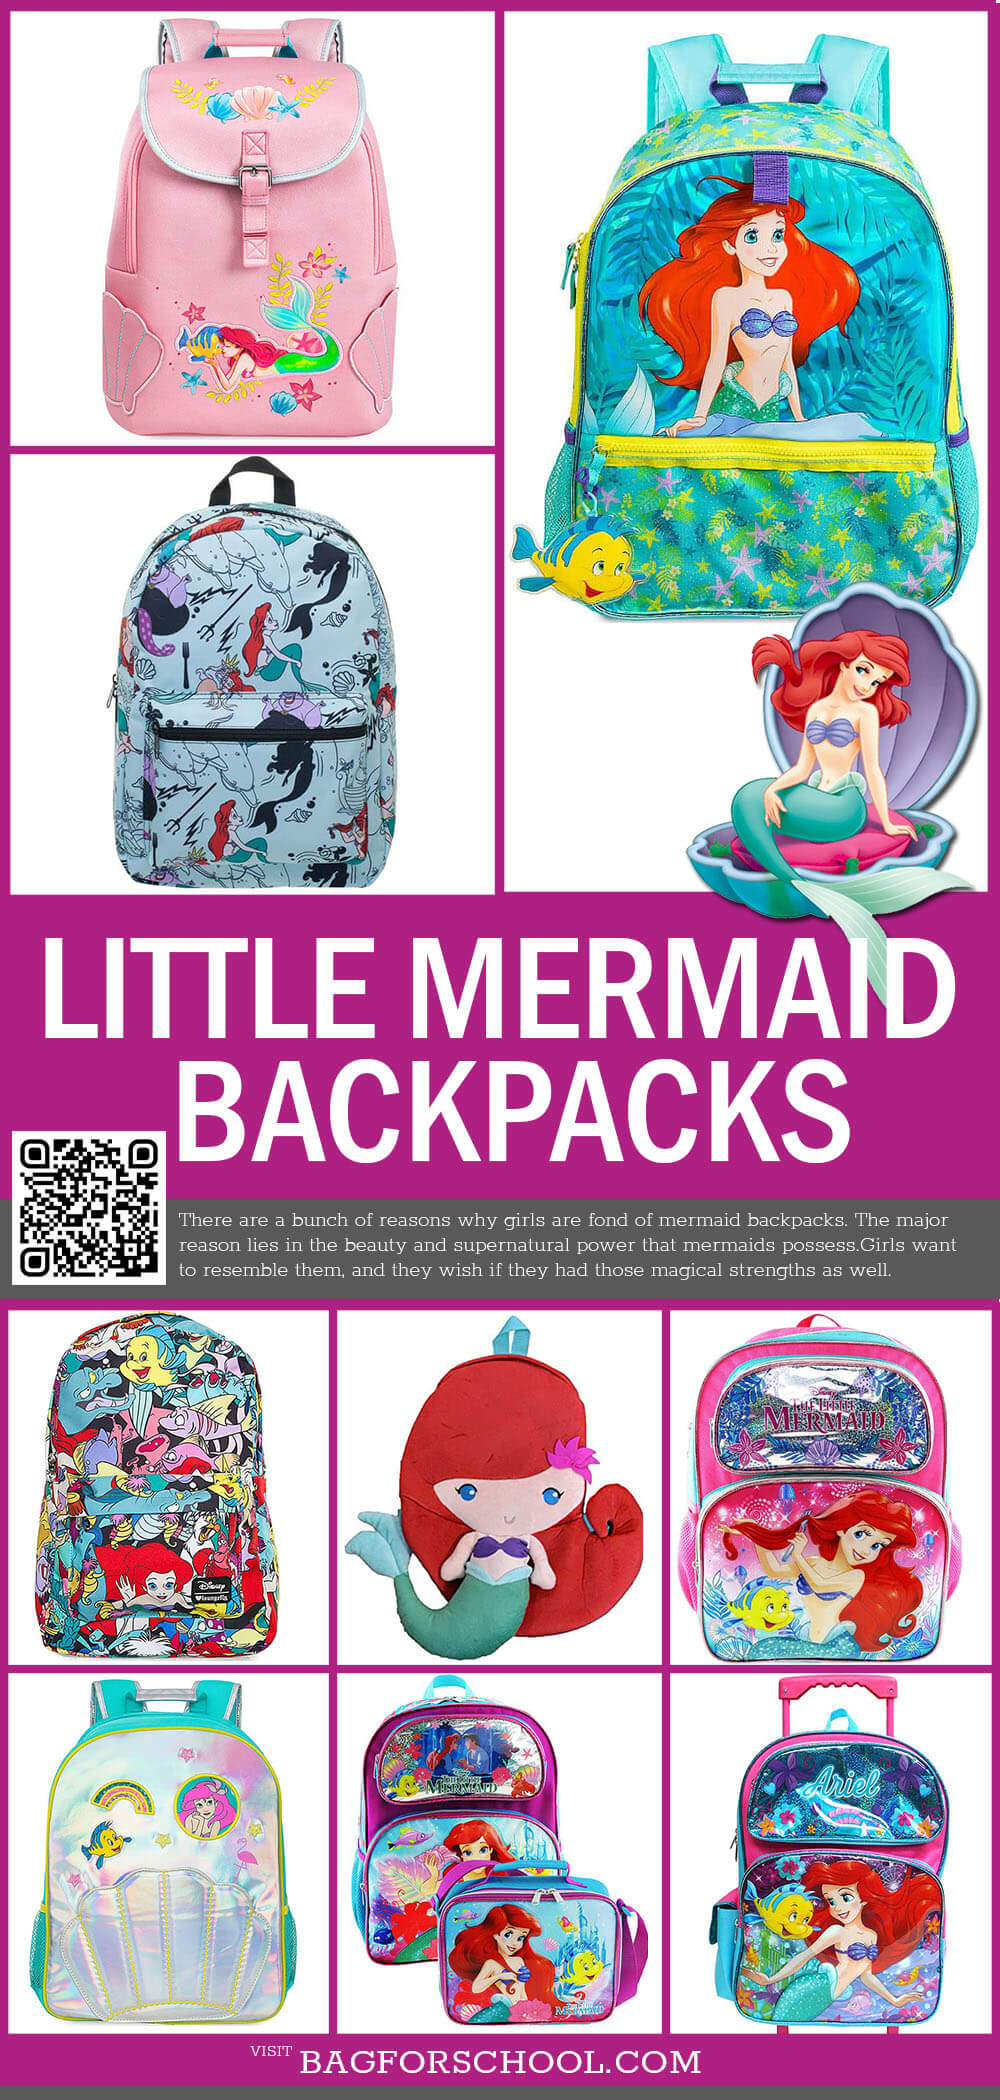 Little Mermaid Backpacks